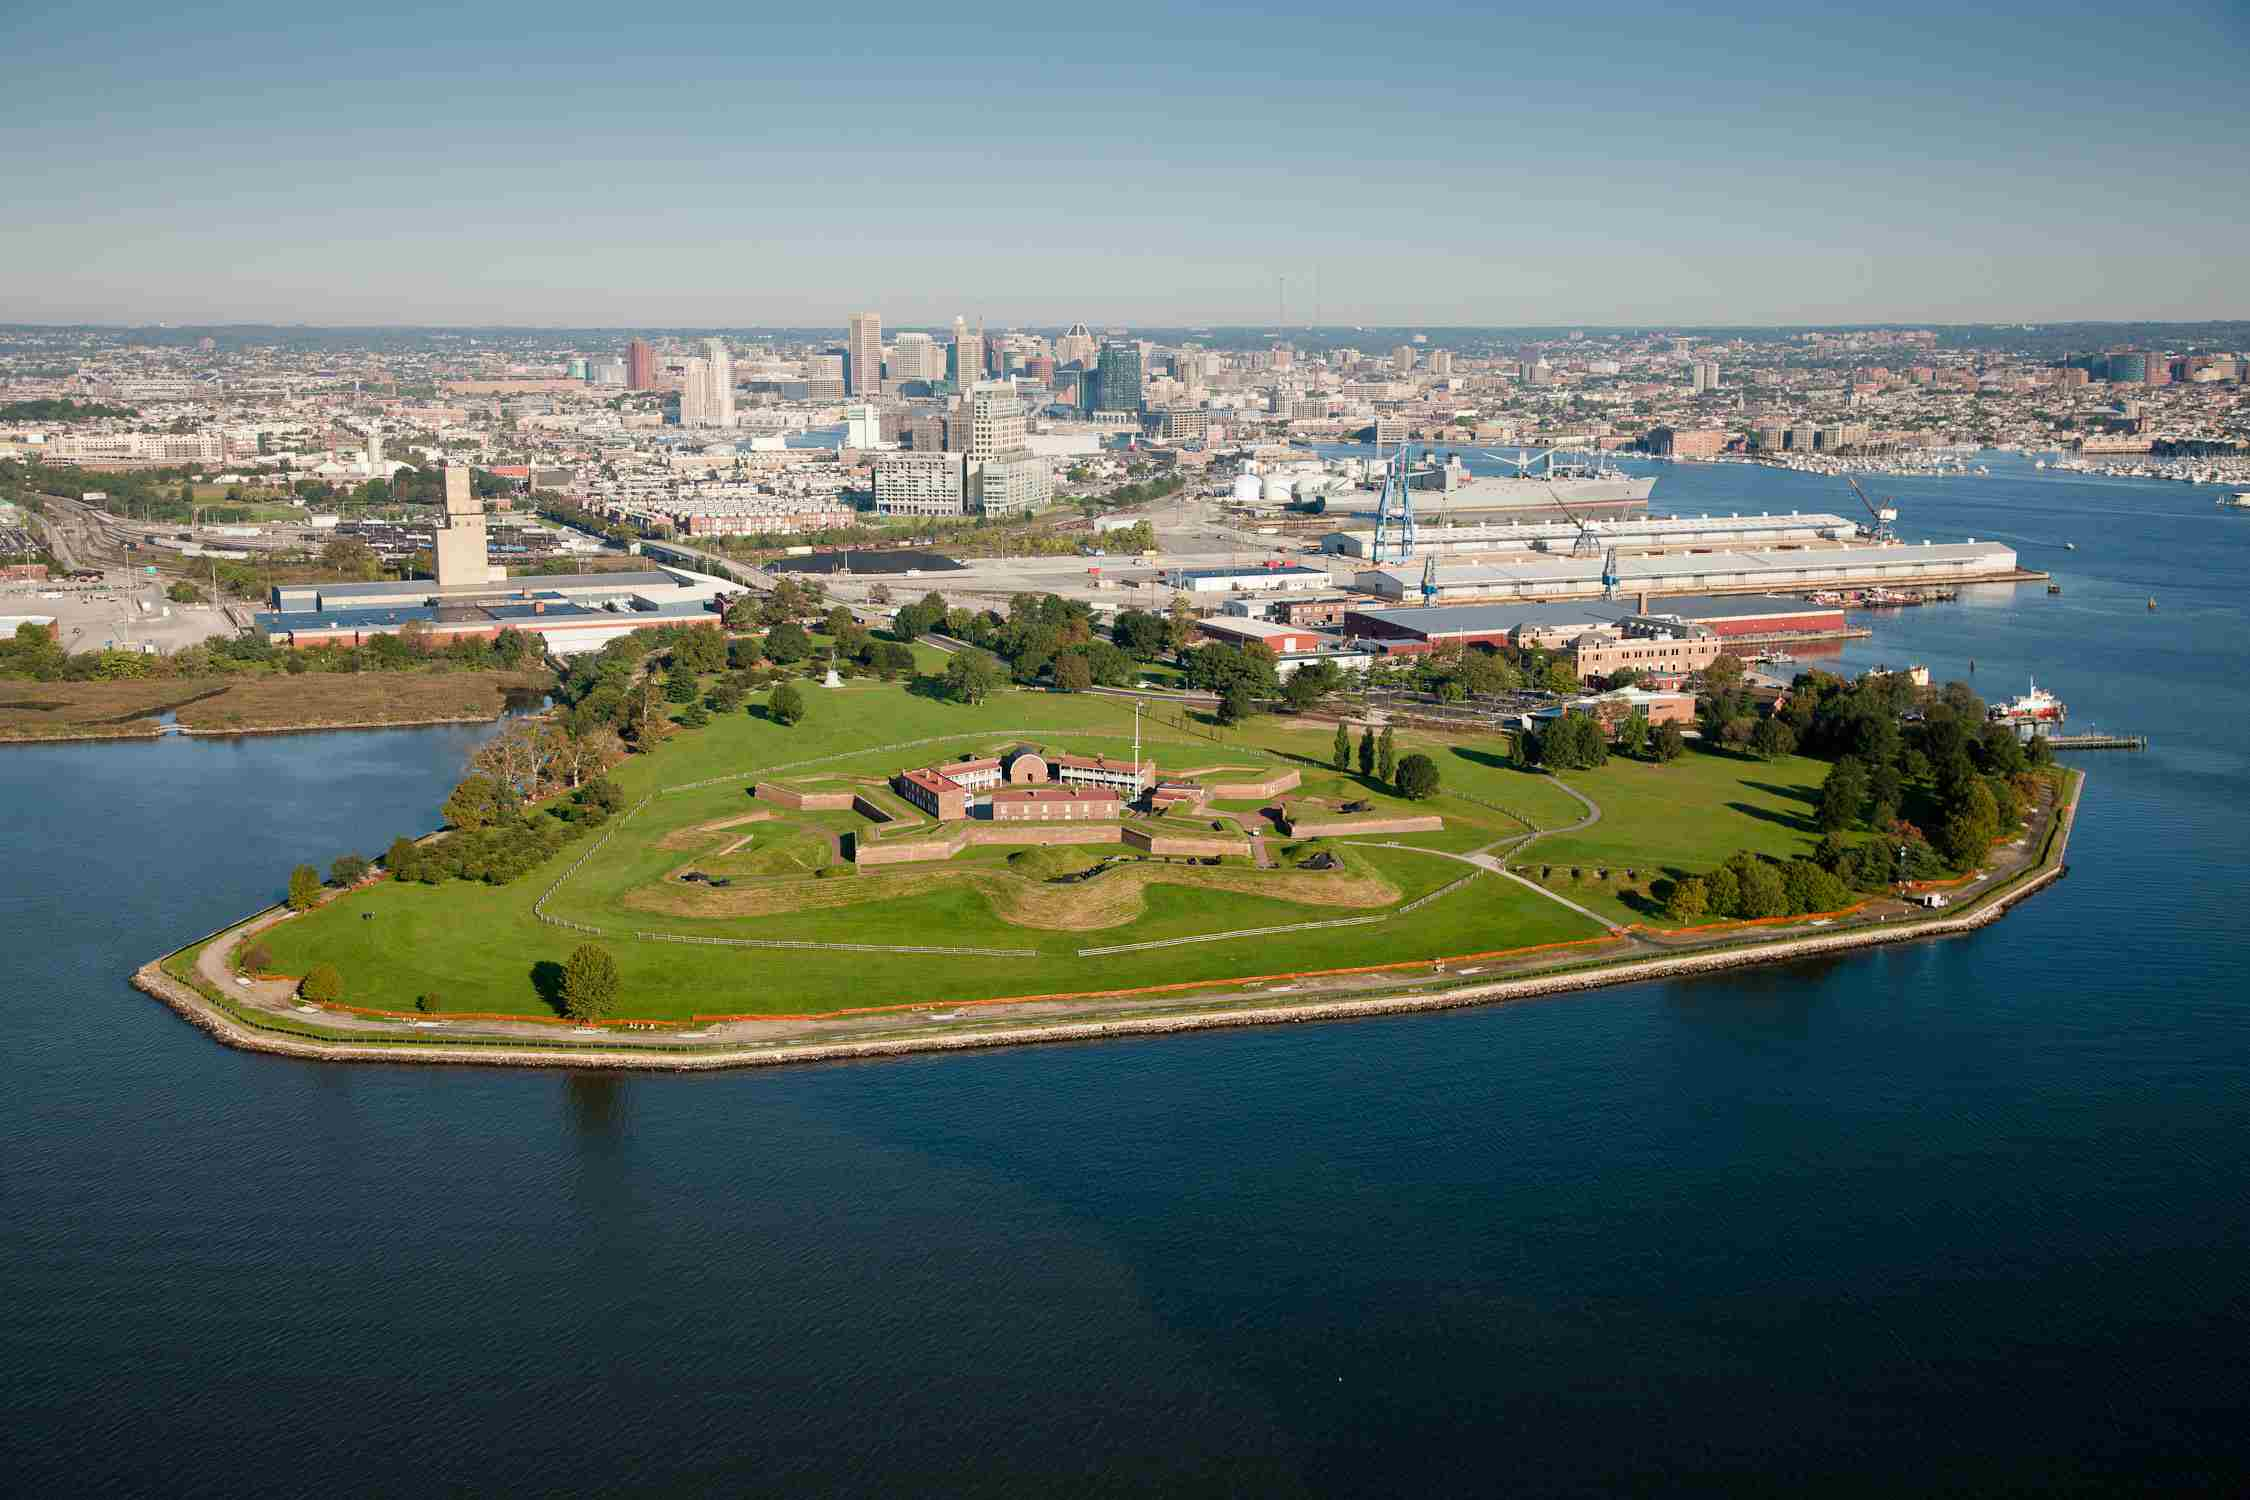 Fort McHenry and the City of Baltimore